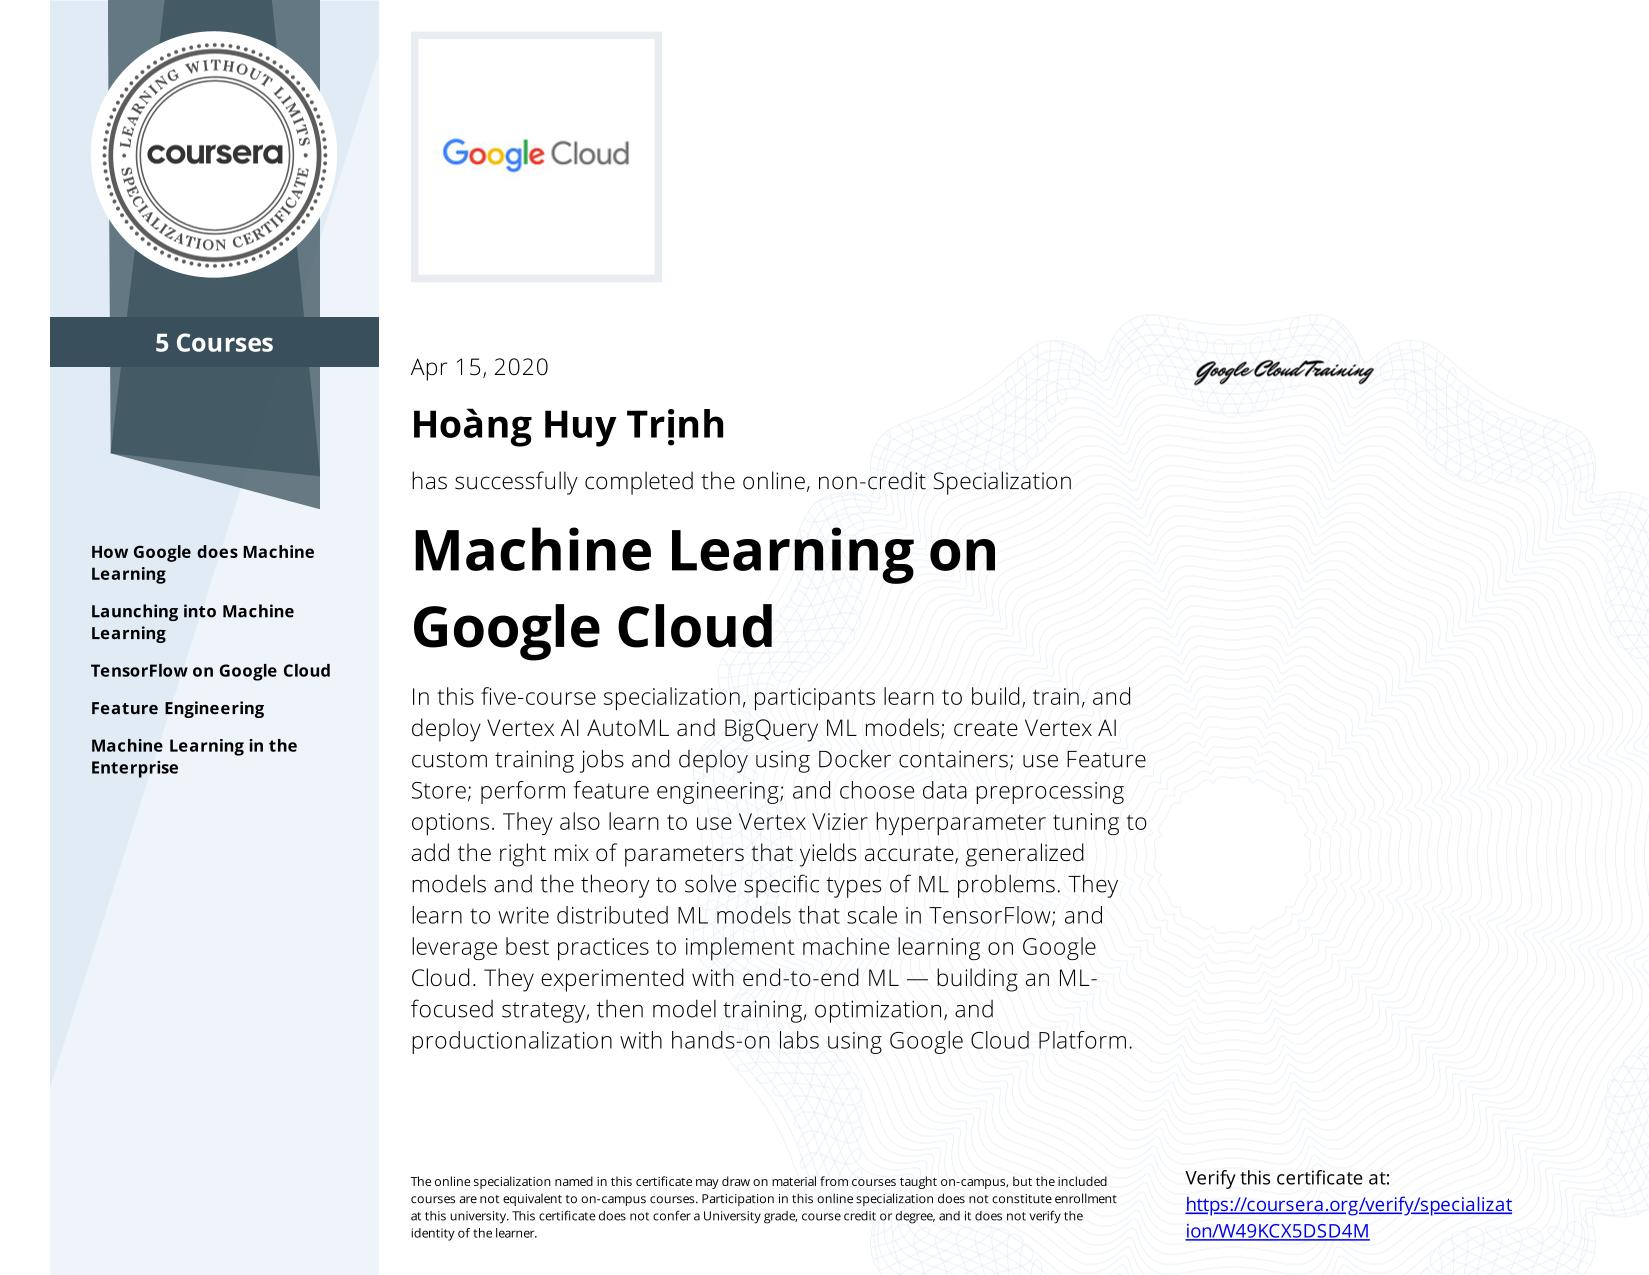 View certificate for Hoàng Huy Trịnh, Machine Learning with TensorFlow on Google Cloud Platform, offered through Coursera. This five-course online specialization teaches course participants how to write distributed machine learning models that scale in Tensorflow, scale out the training of those models. and offer high-performance predictions. Also featured is the conversion of raw data to features in a way that allows ML to learn important characteristics from the data and bring human insight to bear on the problem. It also teaches how to incorporate the right mix of parameters that yields accurate, generalized models and knowledge of the theory to solve specific types of ML problems. Course participants experimented with end-to-end ML, starting from building an ML-focused strategy and progressing into model training, optimization, and productionalization with hands-on labs using Google Cloud Platform.